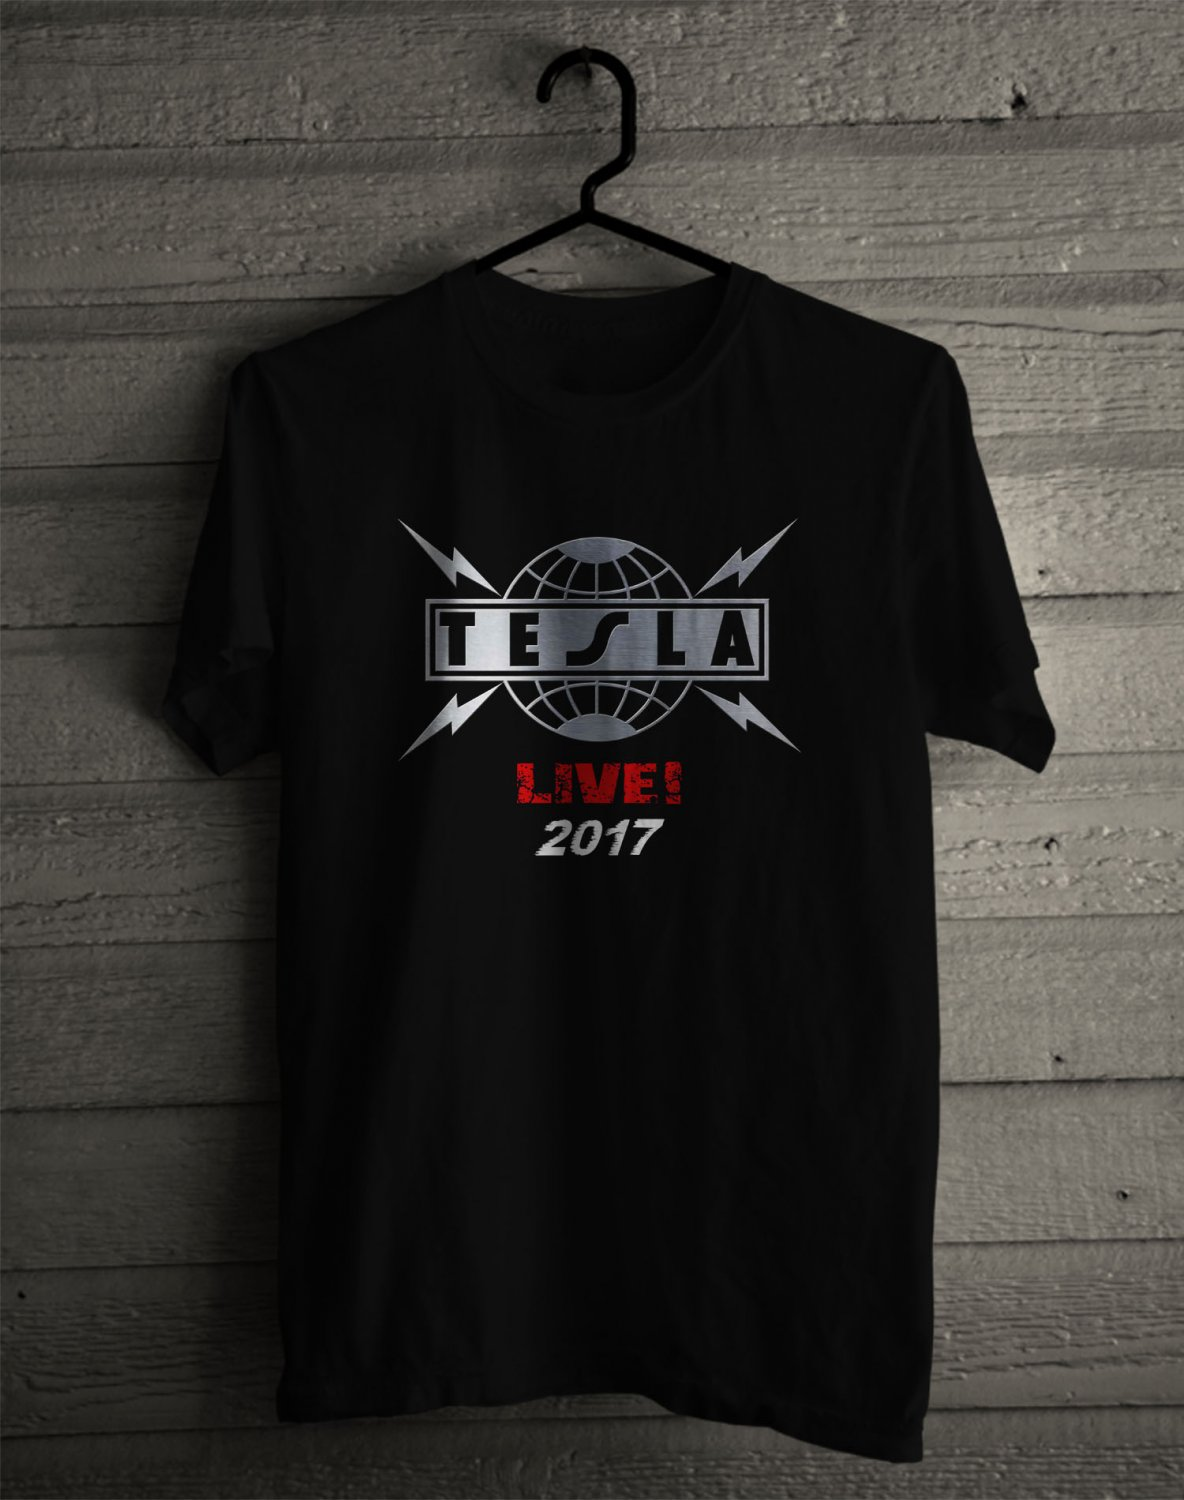 Tesla mechanical Resonance 30th Anniv Tour 2017 Black Tee's Front Side by Complexart